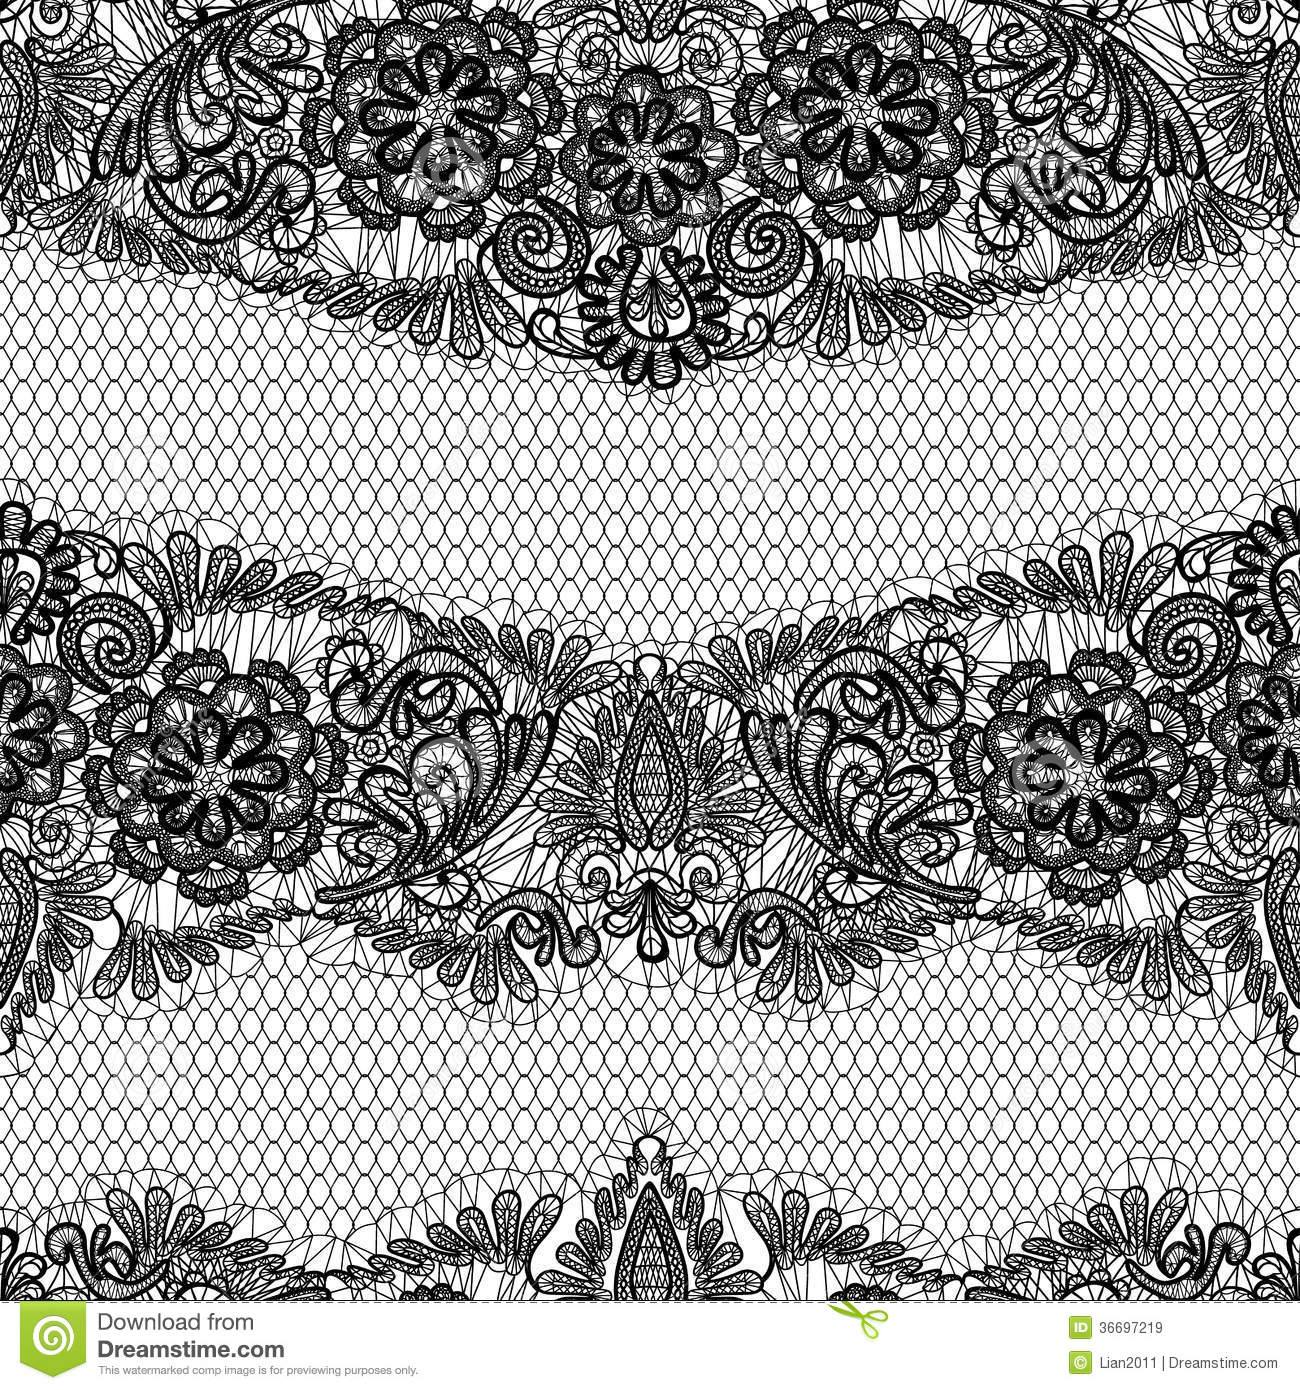 Black Lace seamless pattern with flowers on white